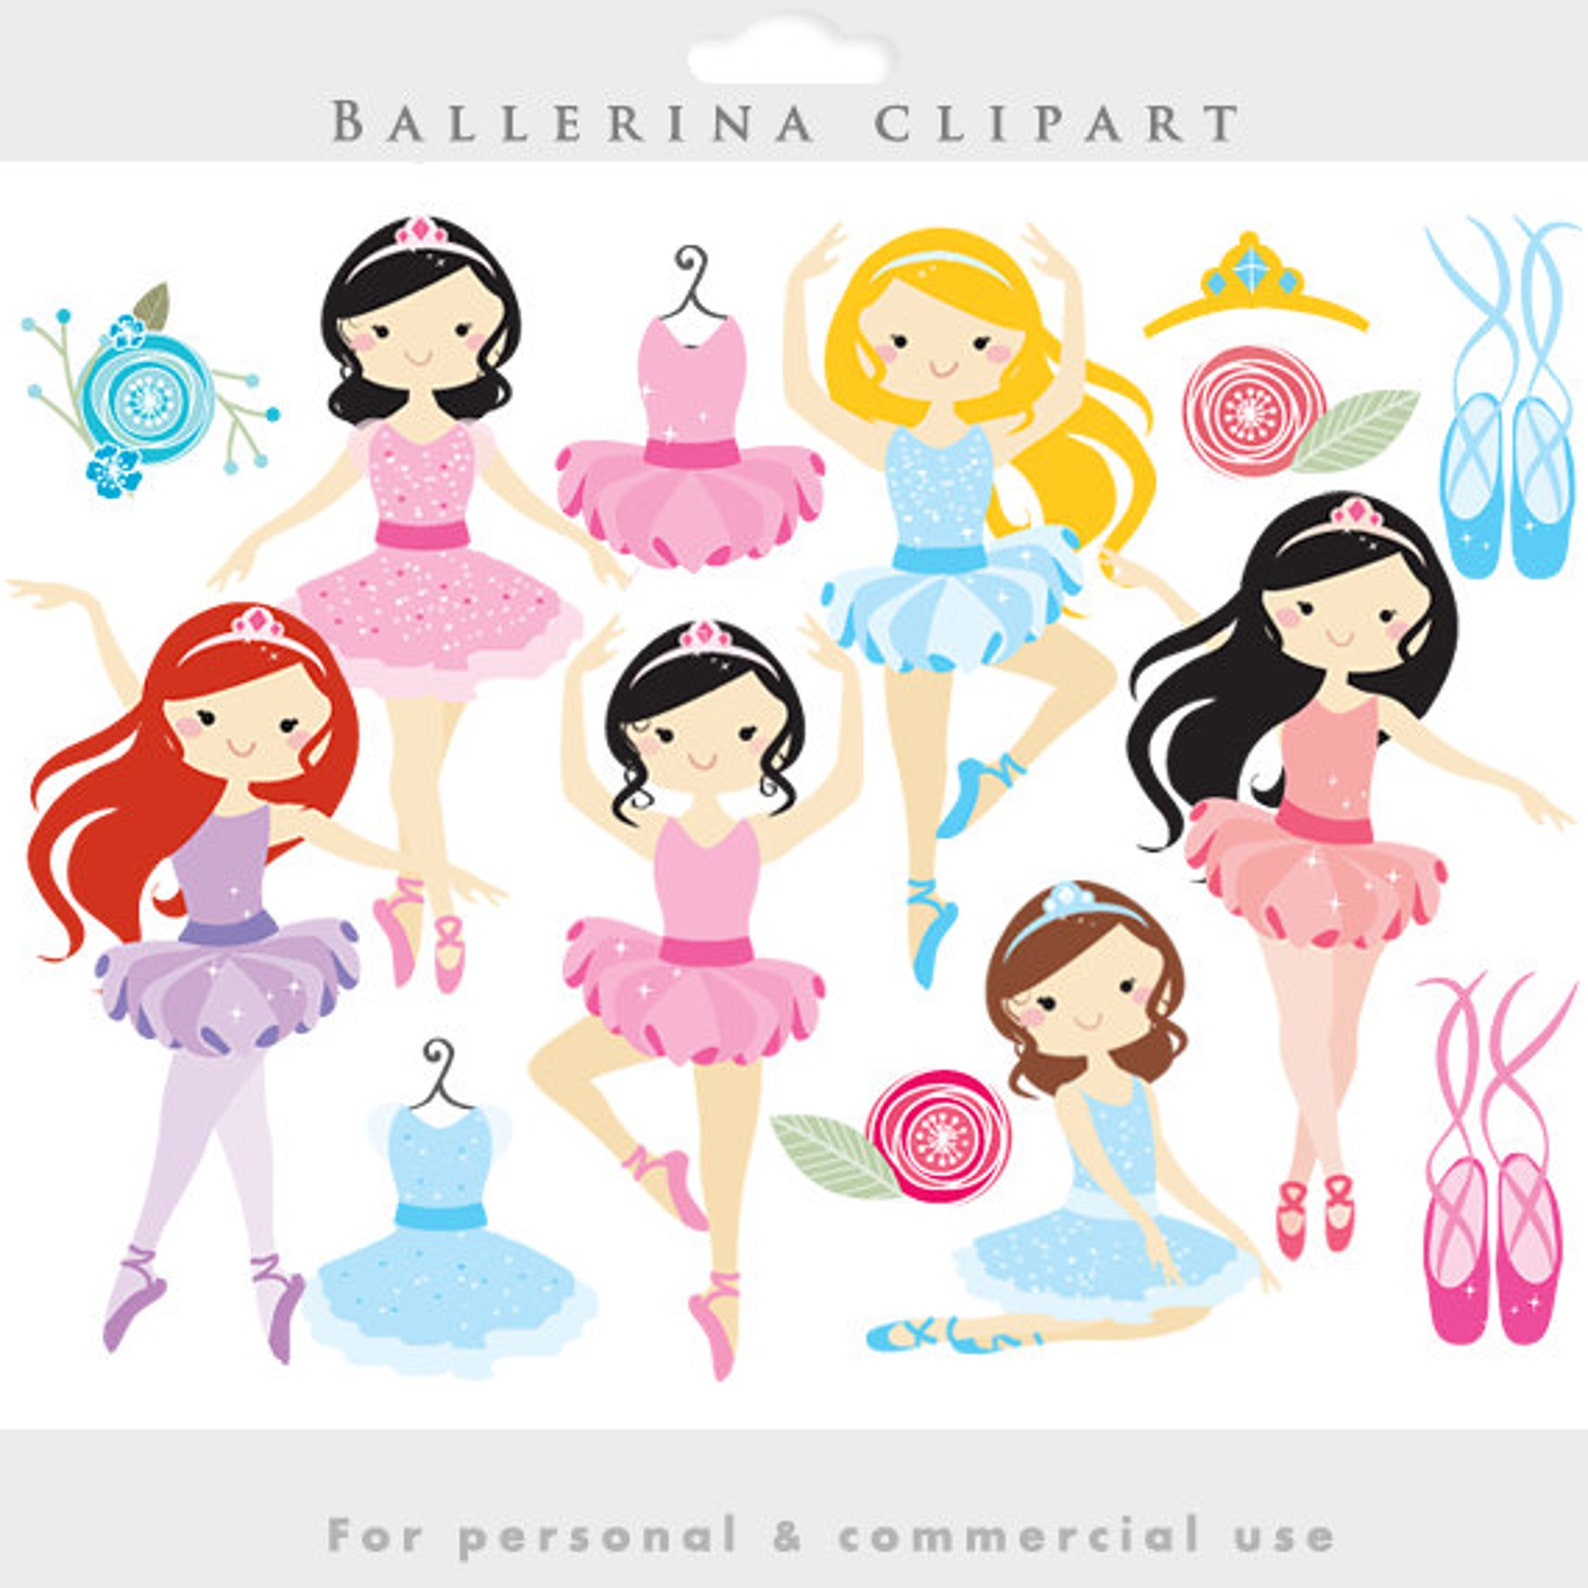 ballerina clipart - ballerina clip art, girl, ballet, dancing, dance dresses, slippers, ballet shoes, girly, for personal and co